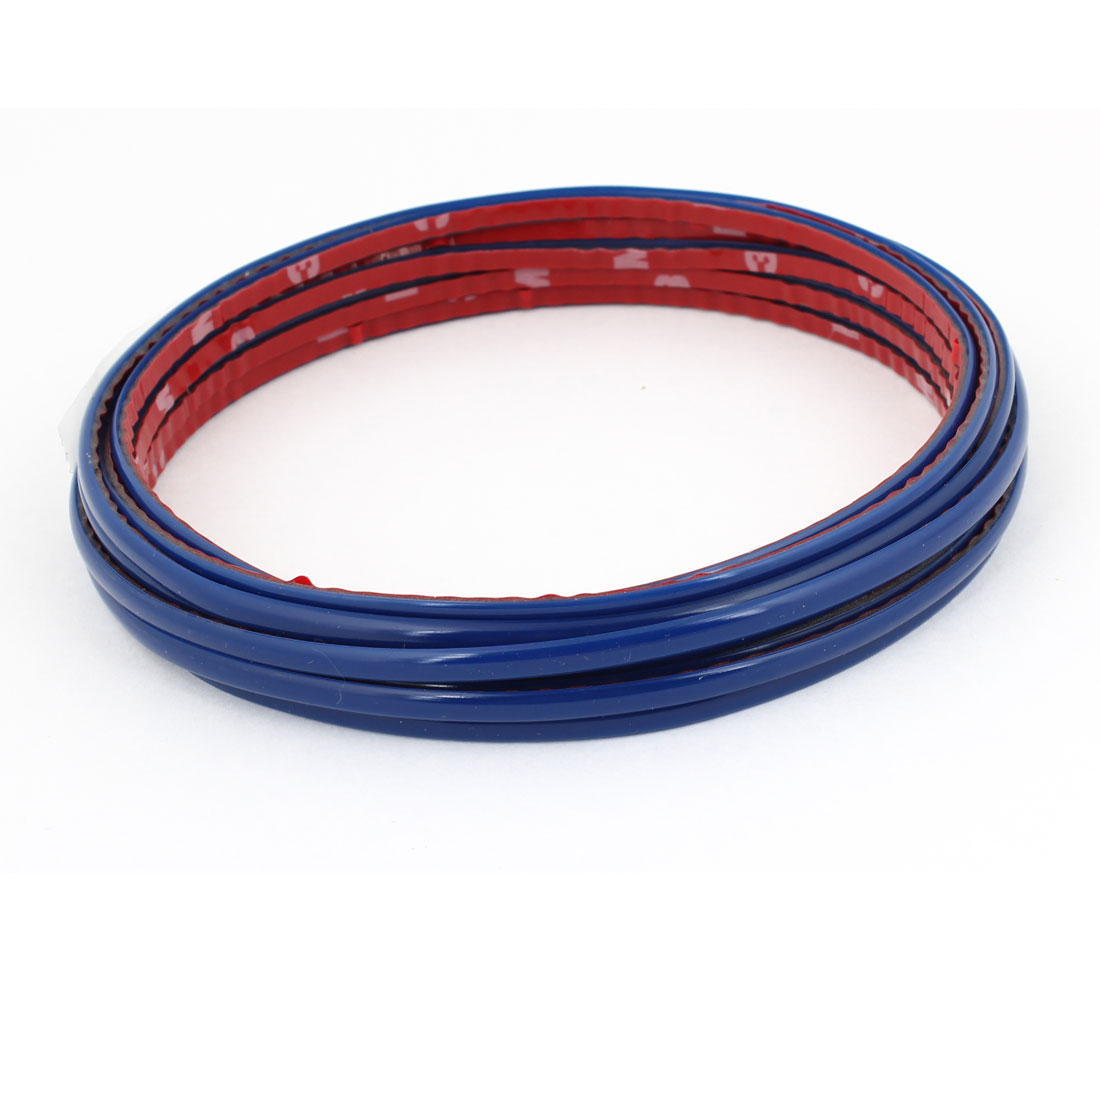 Van Car Truck Blue 5 Meter Length Panel Flexible Ornament Strip Strap